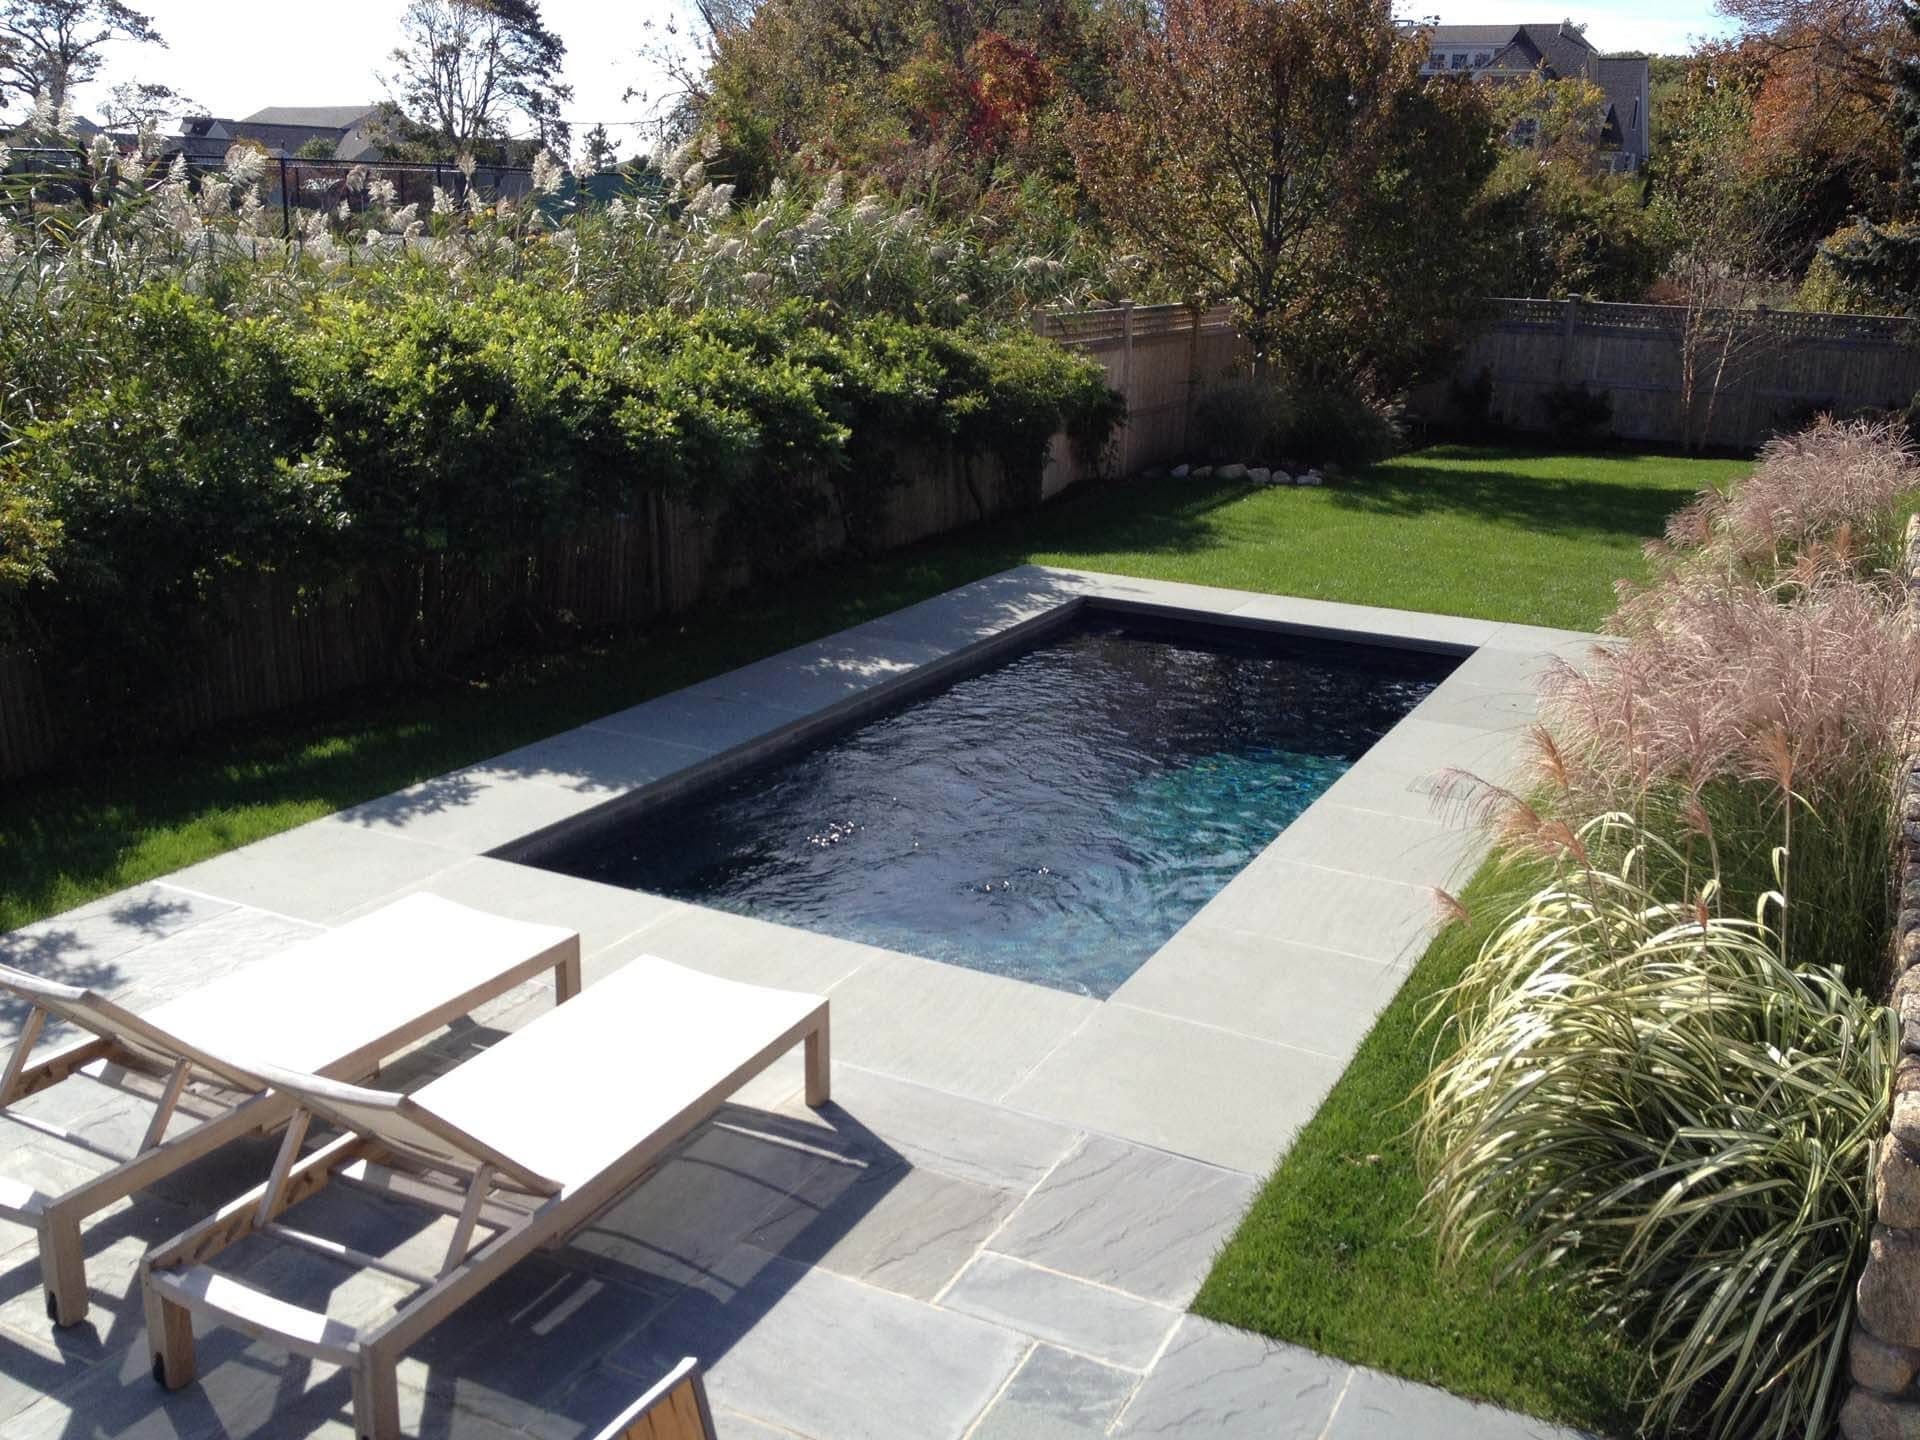 Perfectly Pocket Sized Pools For Small Outdoor Spaces Luxury Pools Backyard Small Backyard Pools Small Outdoor Spaces